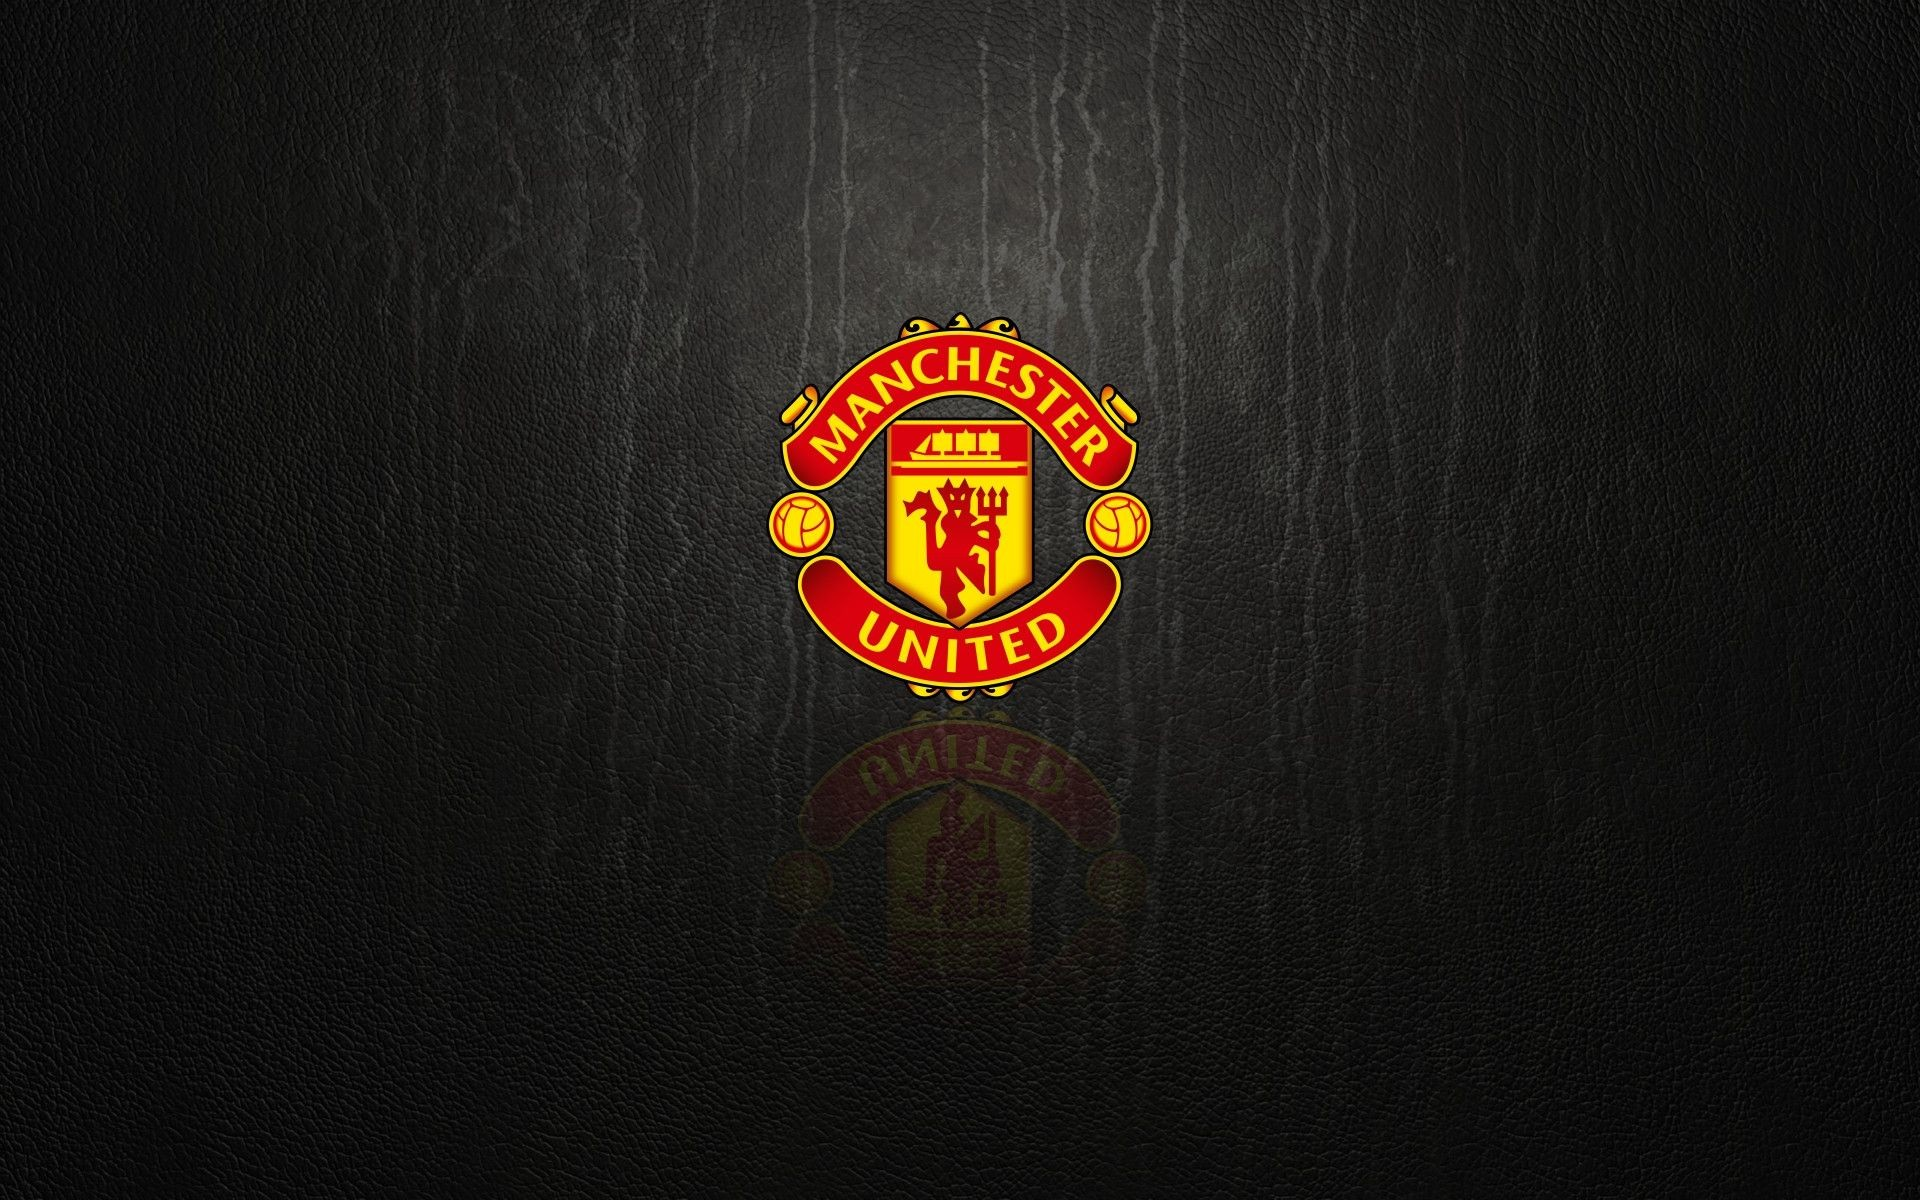 Manchester United Wallpaper Hd Manchester United Falling Logo 2925861 Hd Wallpaper Backgrounds Download